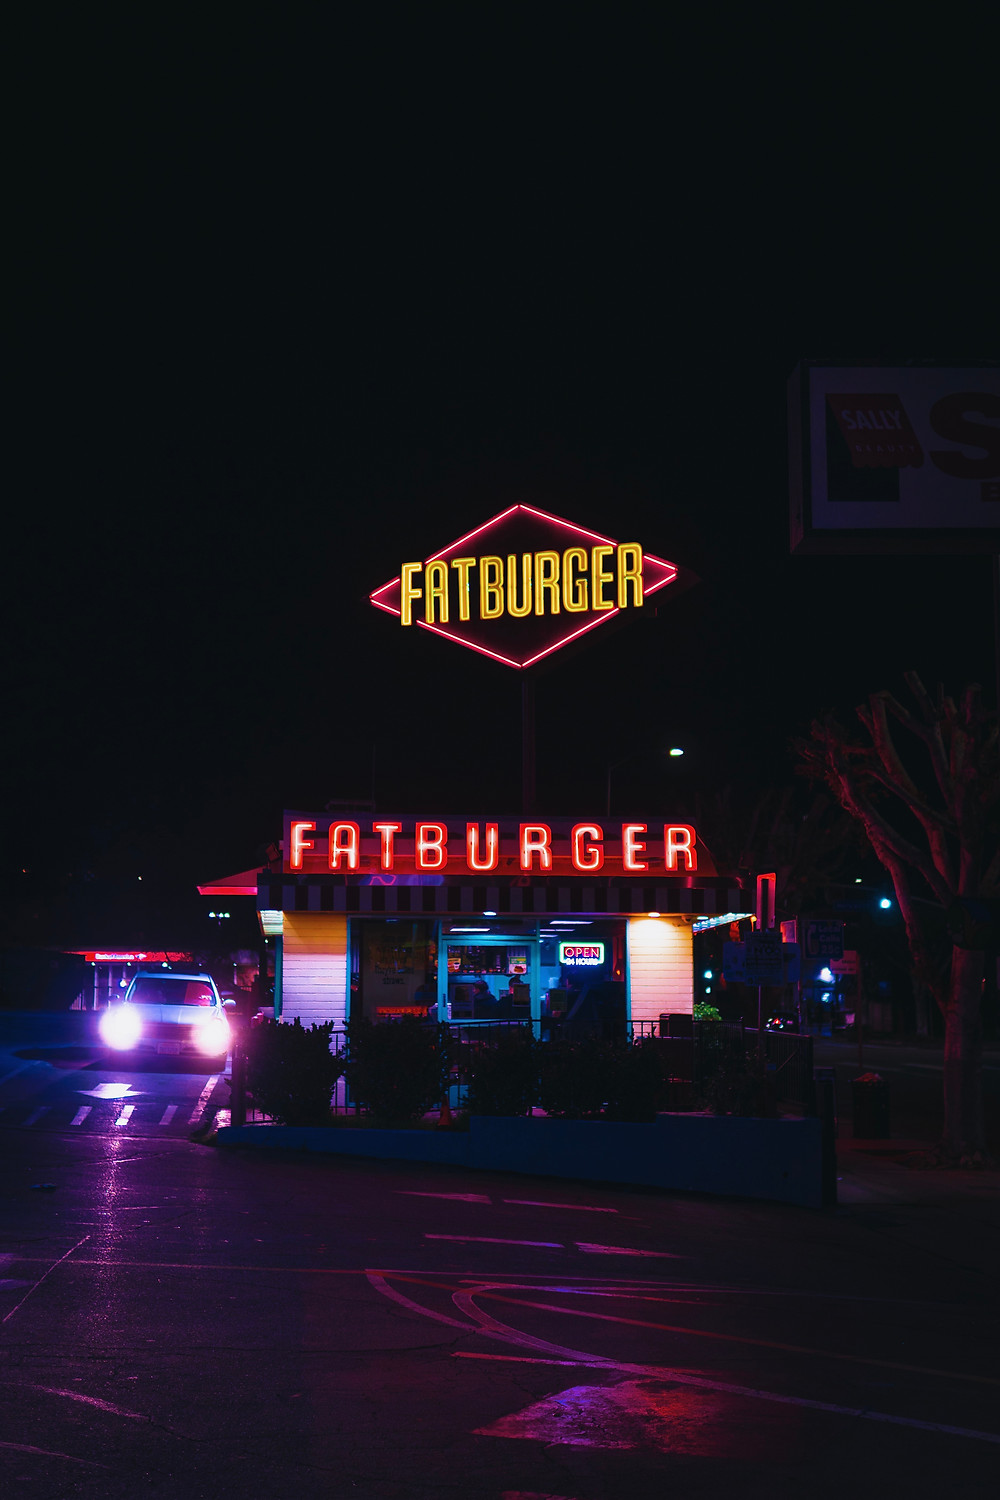 reachur, local influencers, fatburger, franchise,